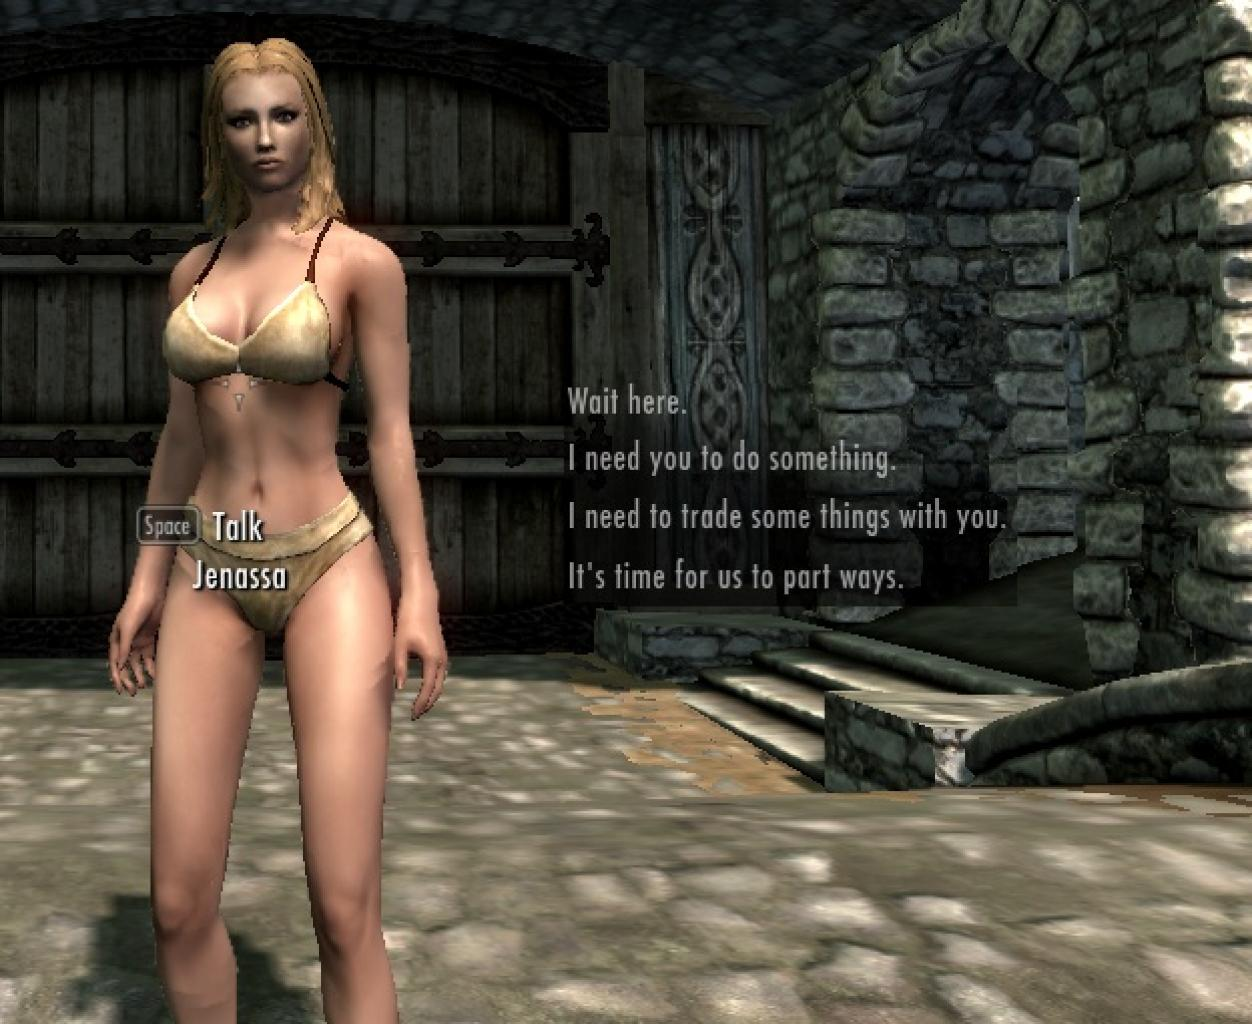 Nude females mod skyrim steam workshop nude films